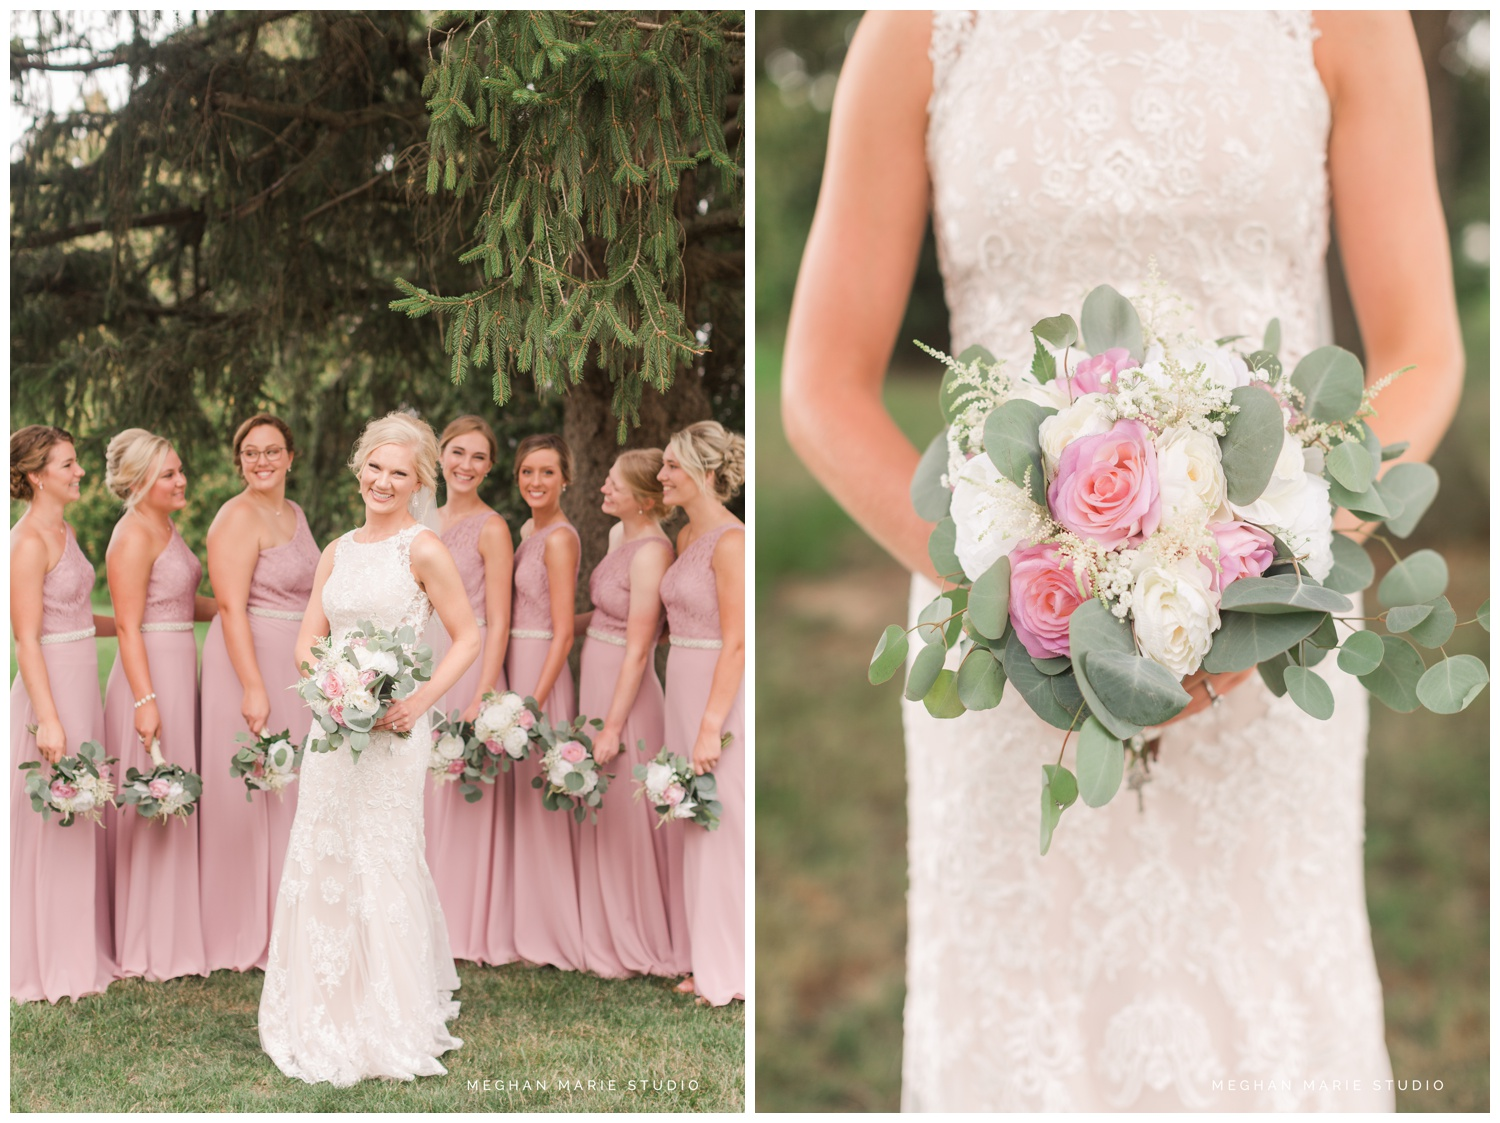 meghan marie studio wedding photographer ohio troy dayton columbus small town rustic rural farm cows vintage mauves dusty rose pinks whites ivorys grays f1 sound paper lanterns pearls_0602.jpg